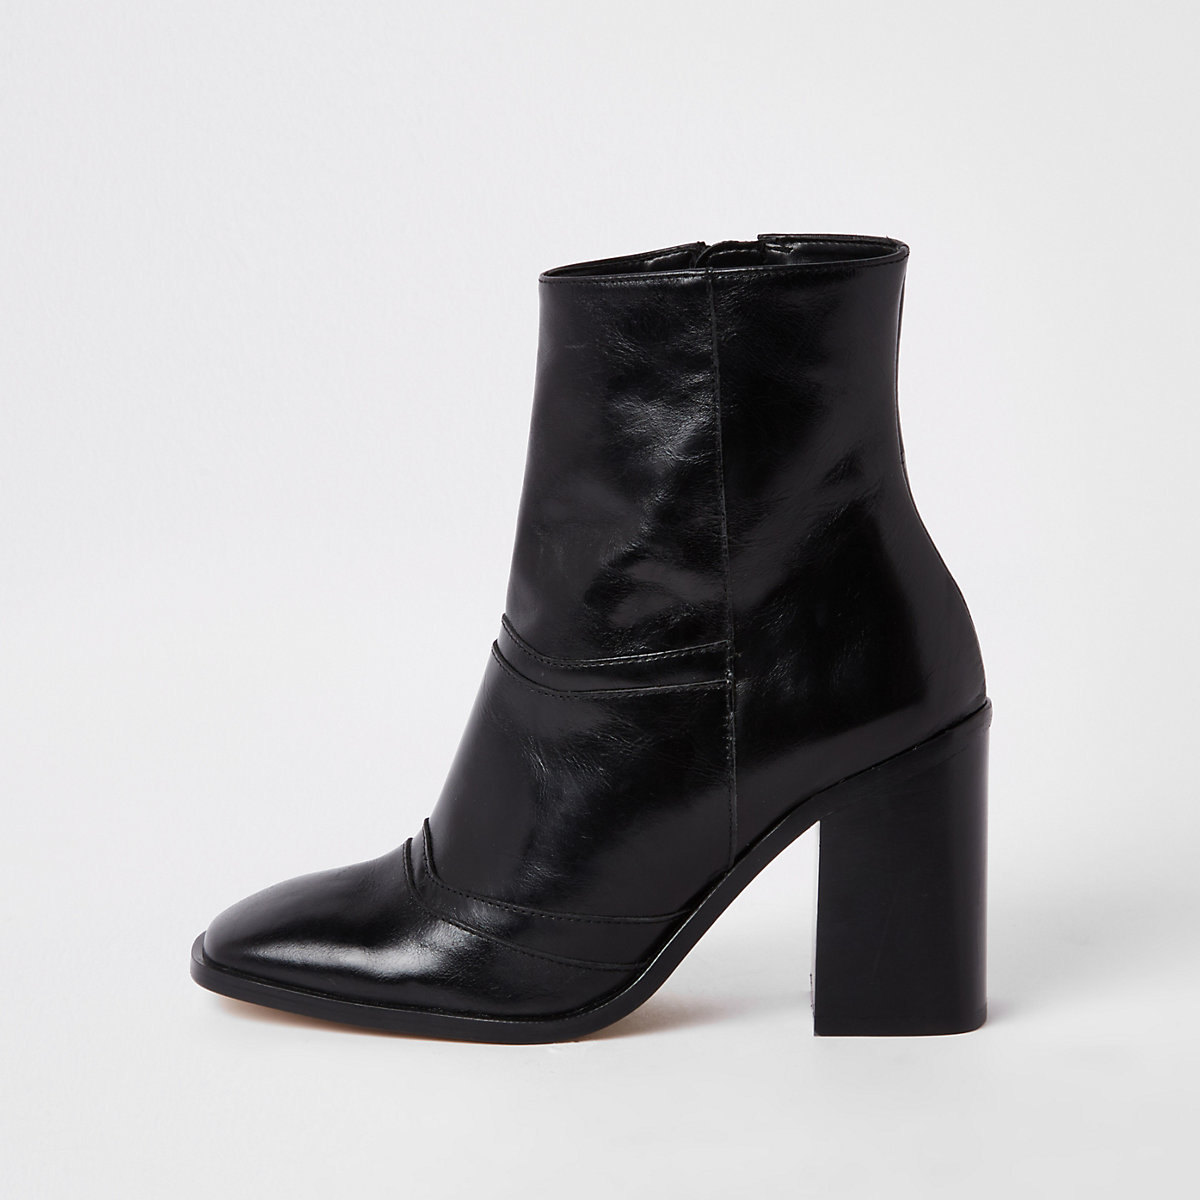 Black leather square toe ankle boots